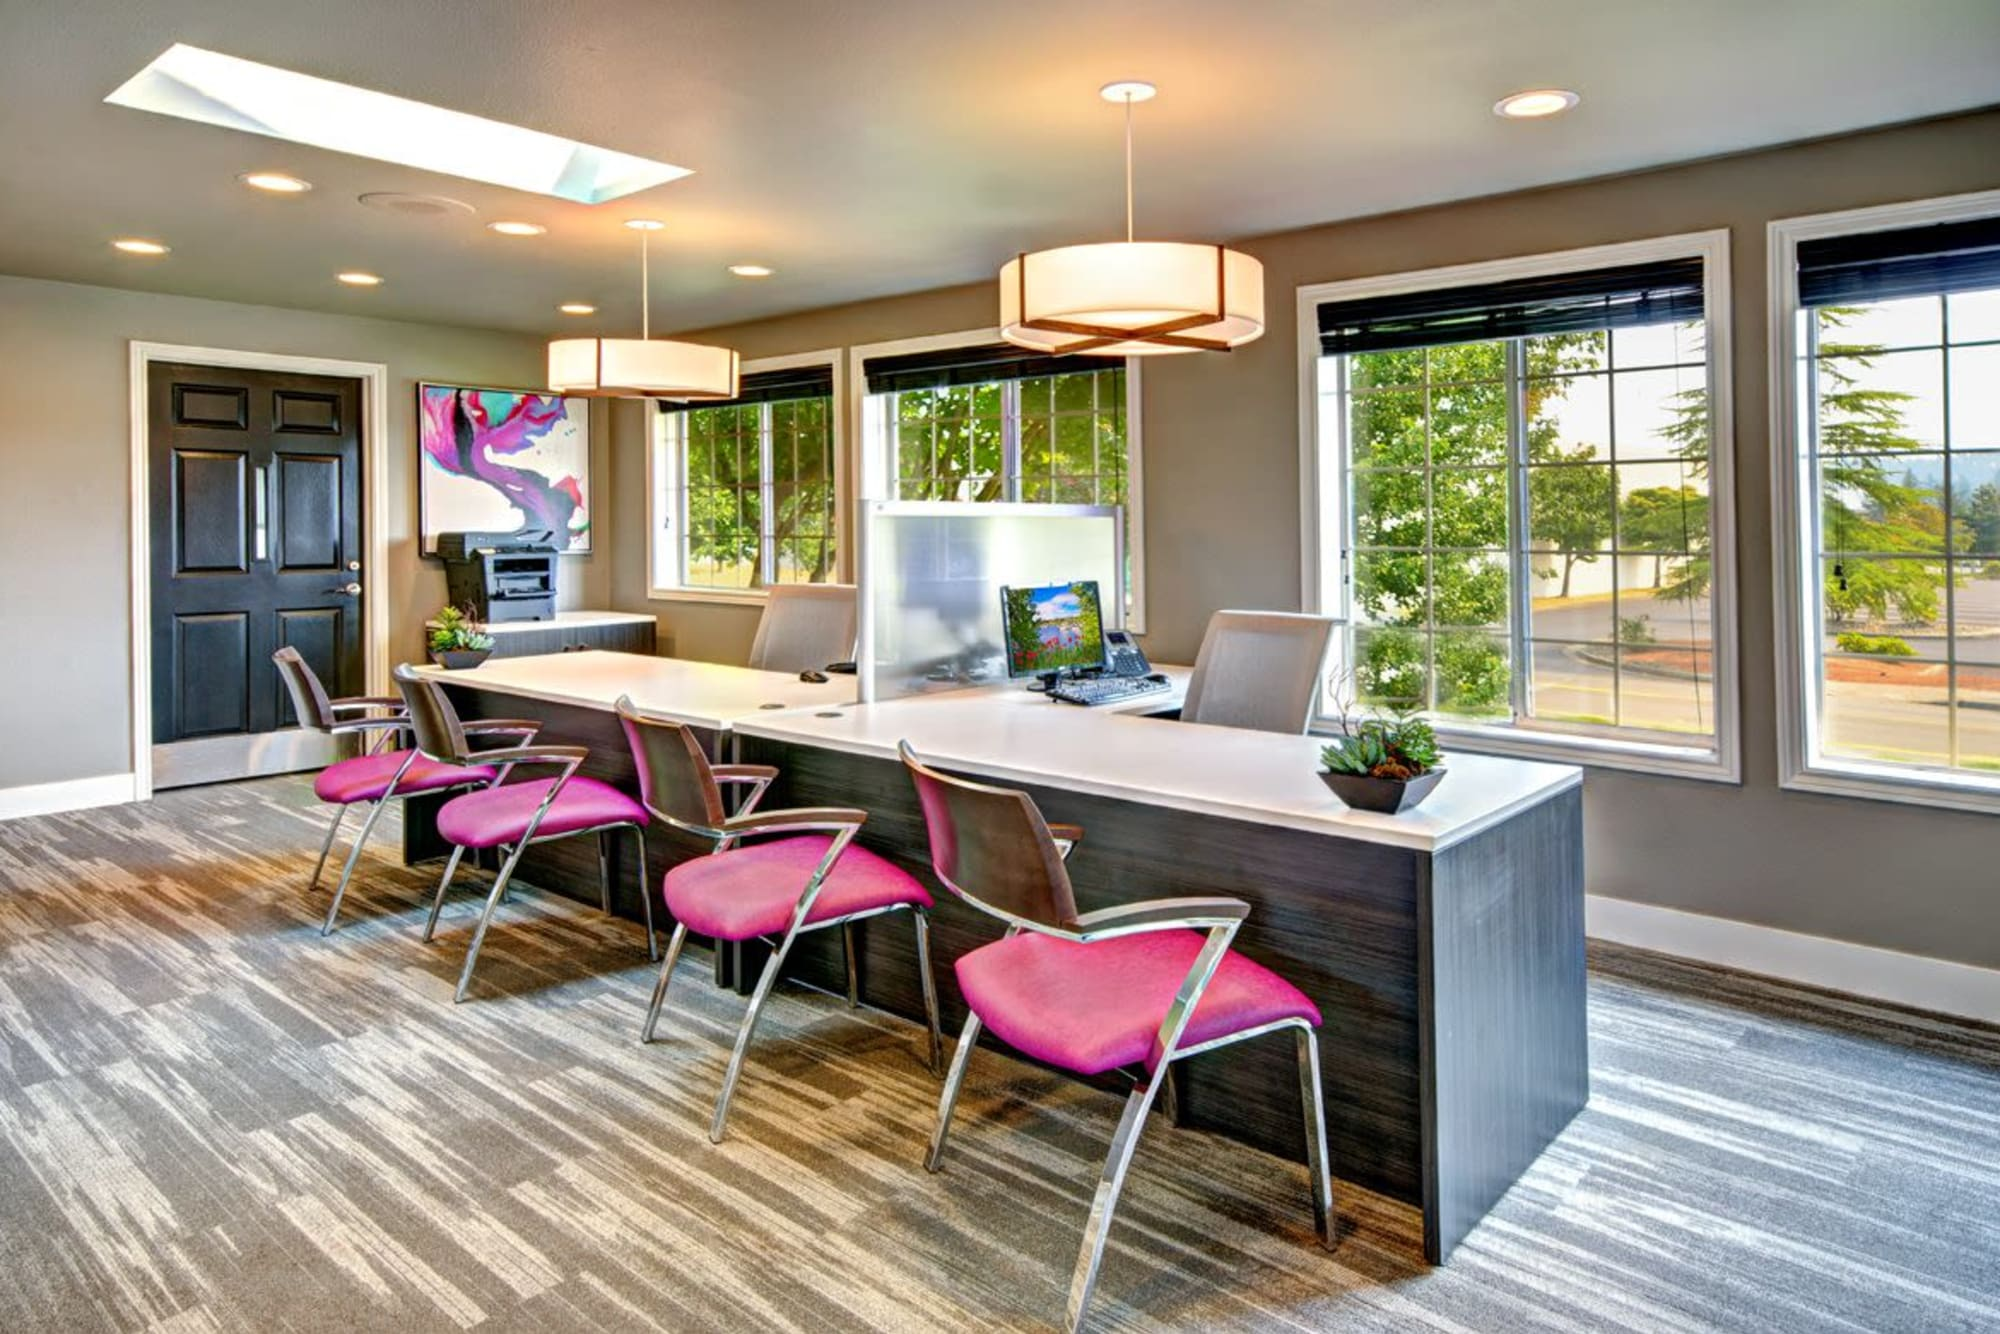 The leasing office at Wellington Apartment Homes in Silverdale, Washington